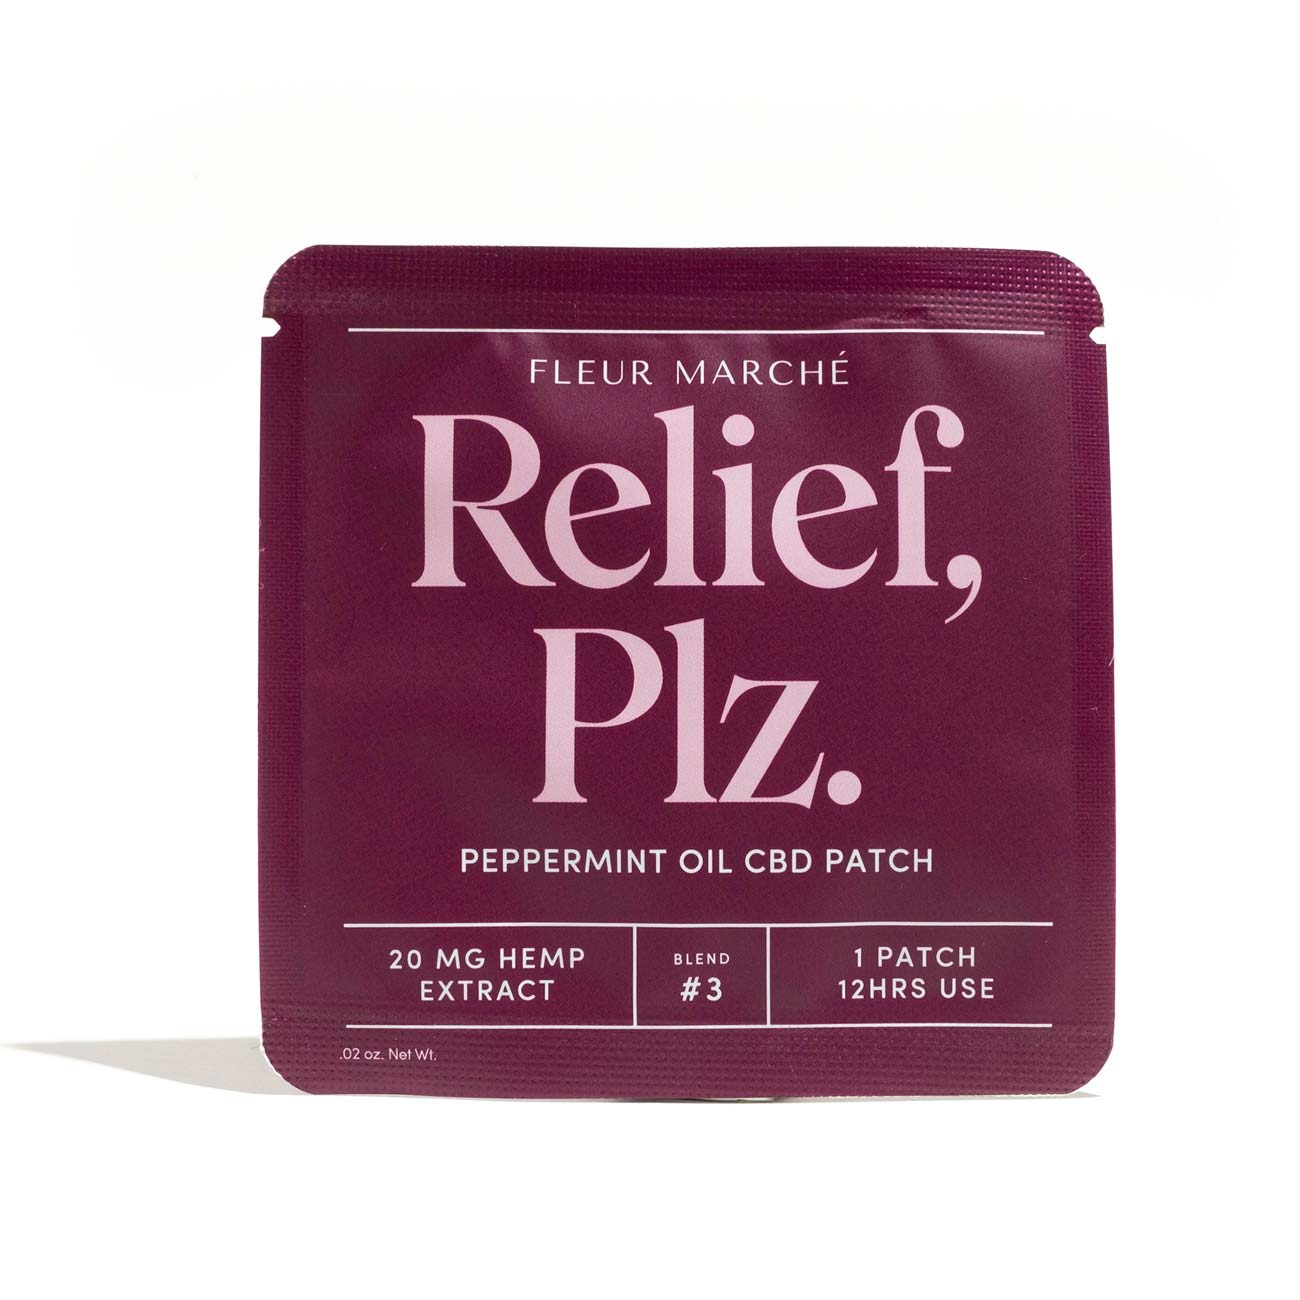 The Relief Patch